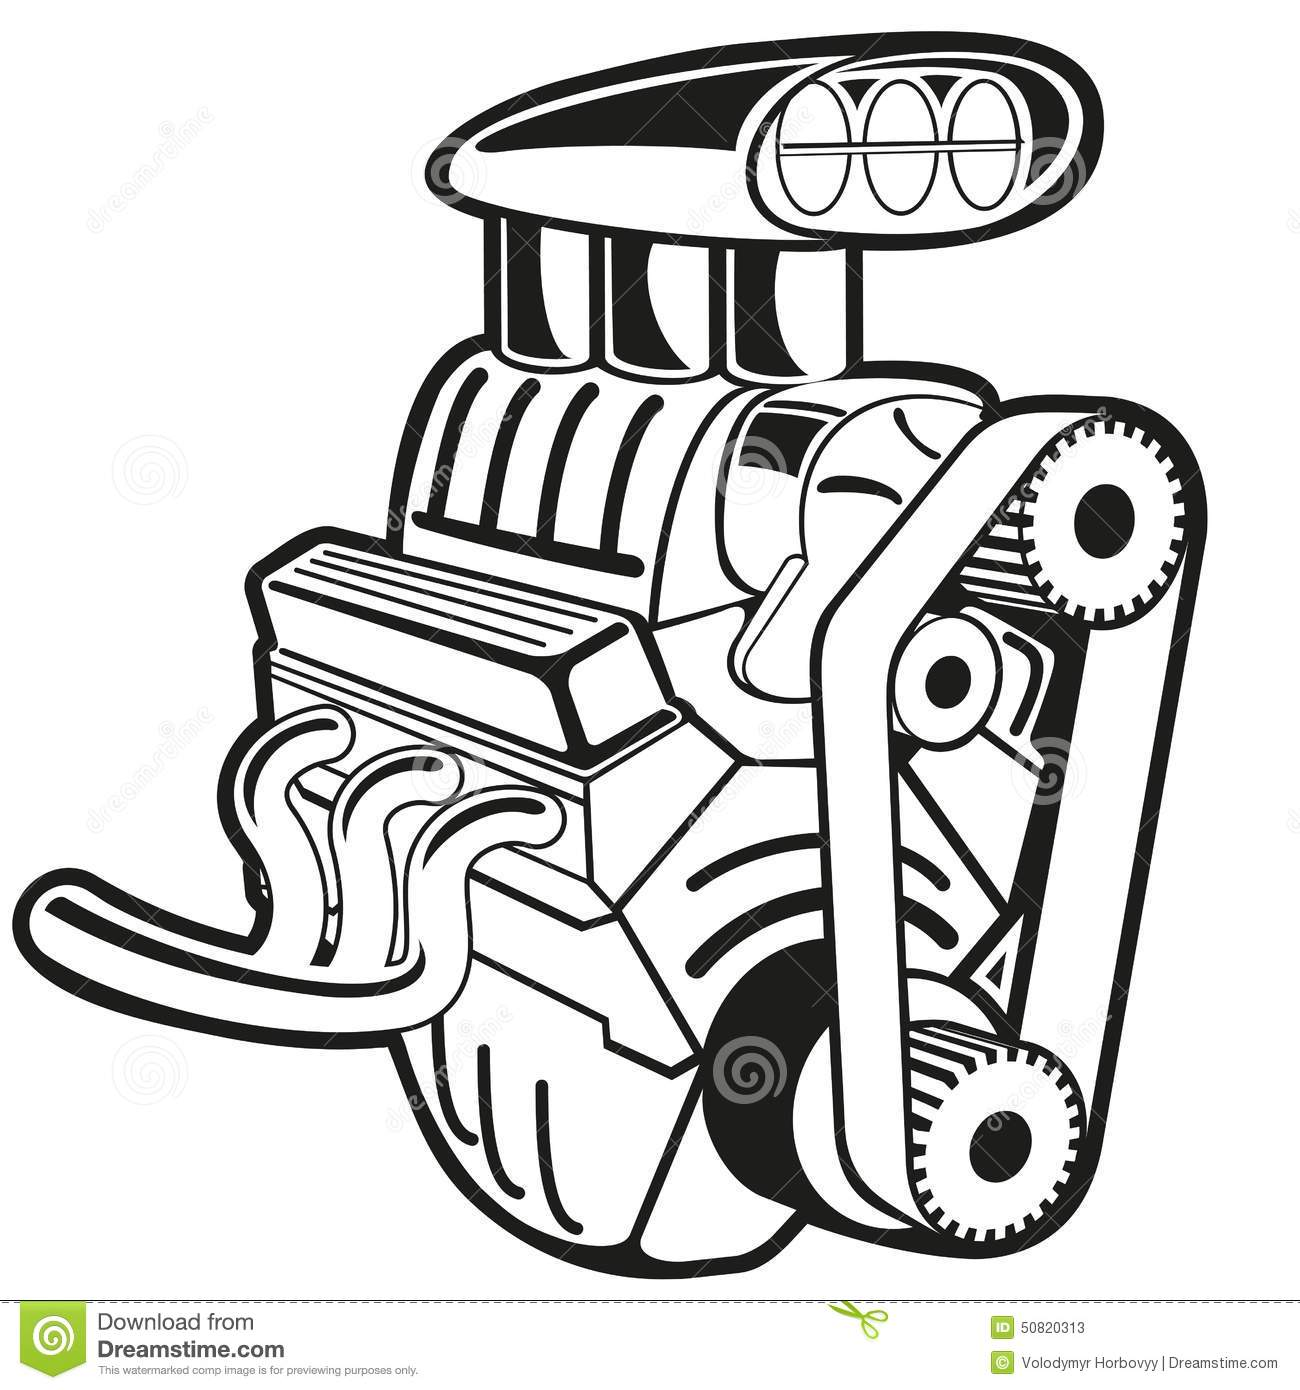 Car drawing at paintingvalley. Engine clipart automobile engine